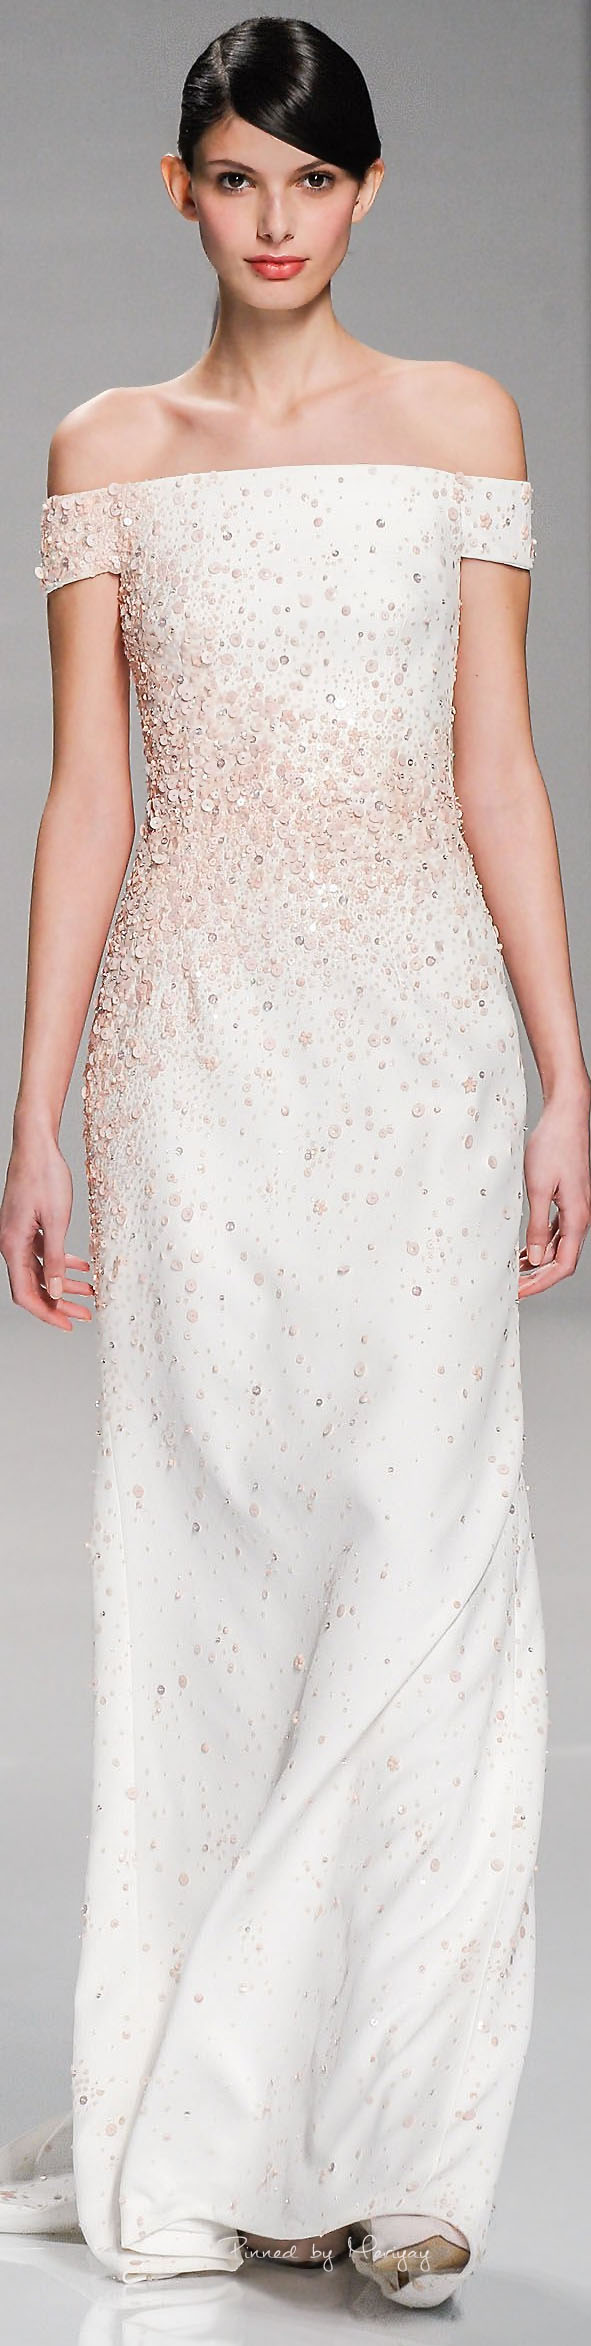 Slick and Modern and great for those brides less endowed. Ron. Georges Hobeika Spring-summer 2015 - Couture.